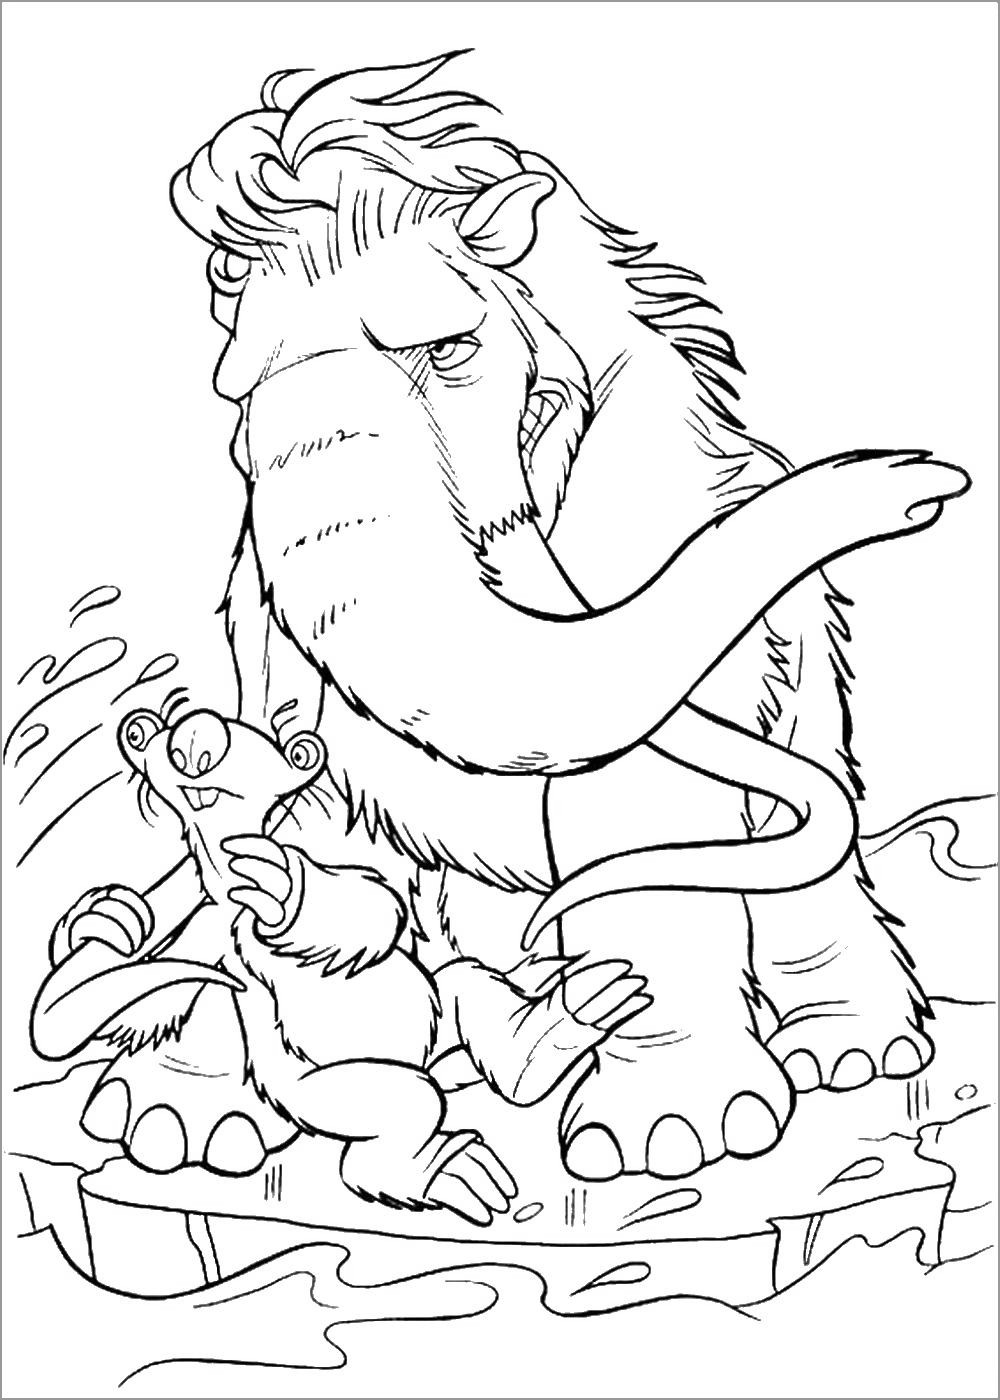 Woolly Mammoth Coloring Page for Adults